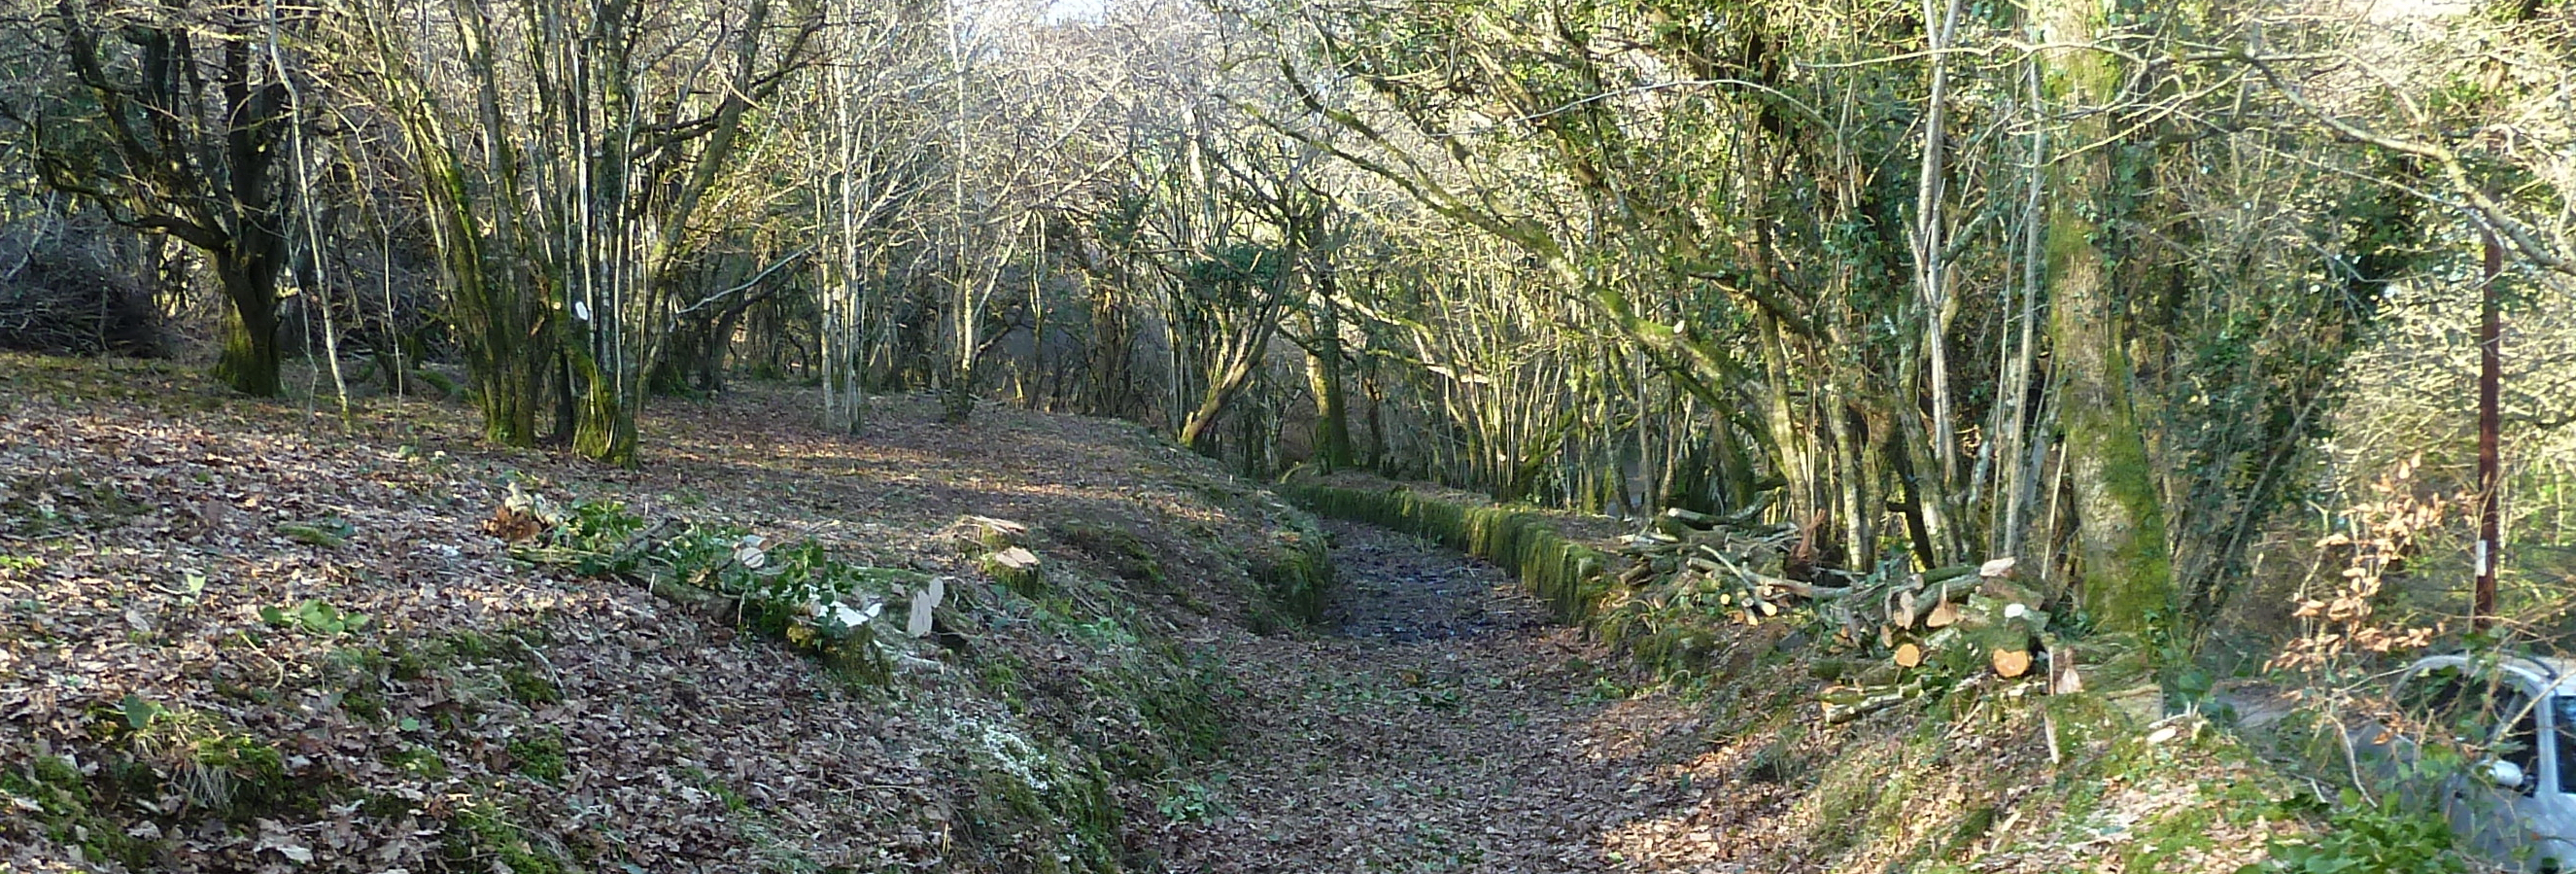 Photo of the leat where it has been cleared